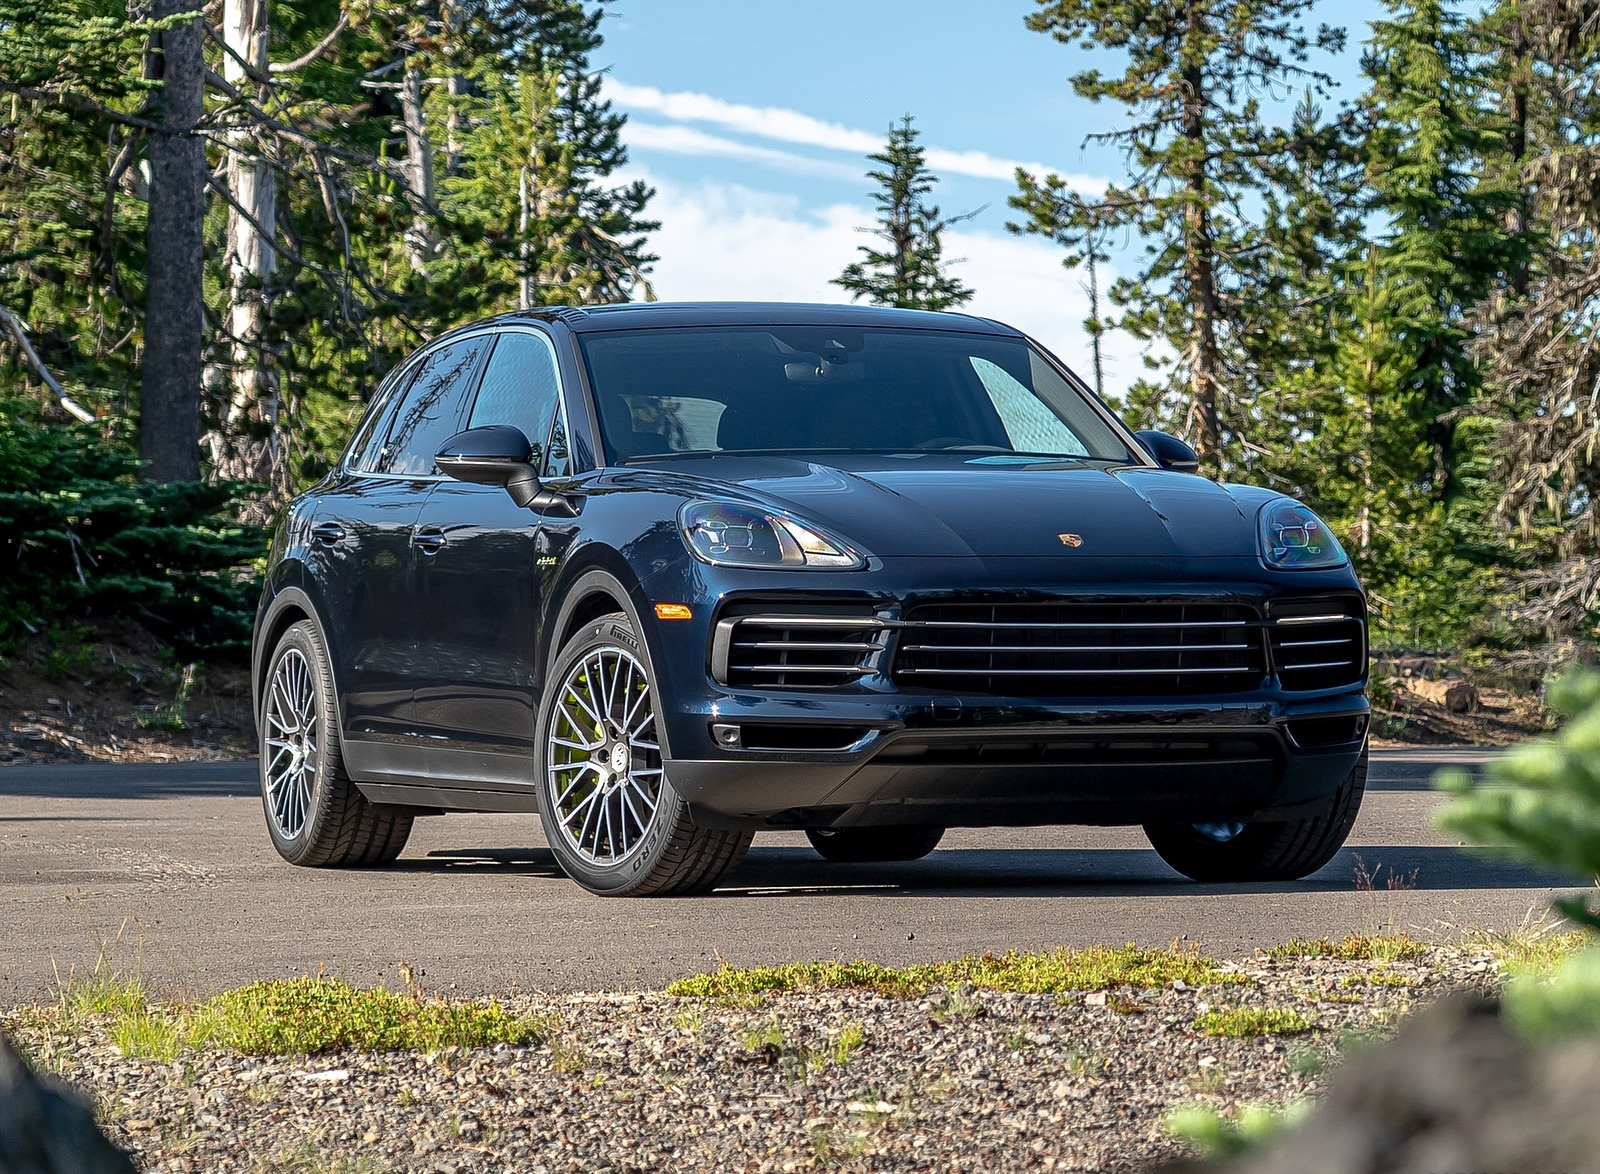 2019 Porsche Cayenne E-Hybrid (US-Spec) Front Three-Quarter Wallpapers #16 of 37